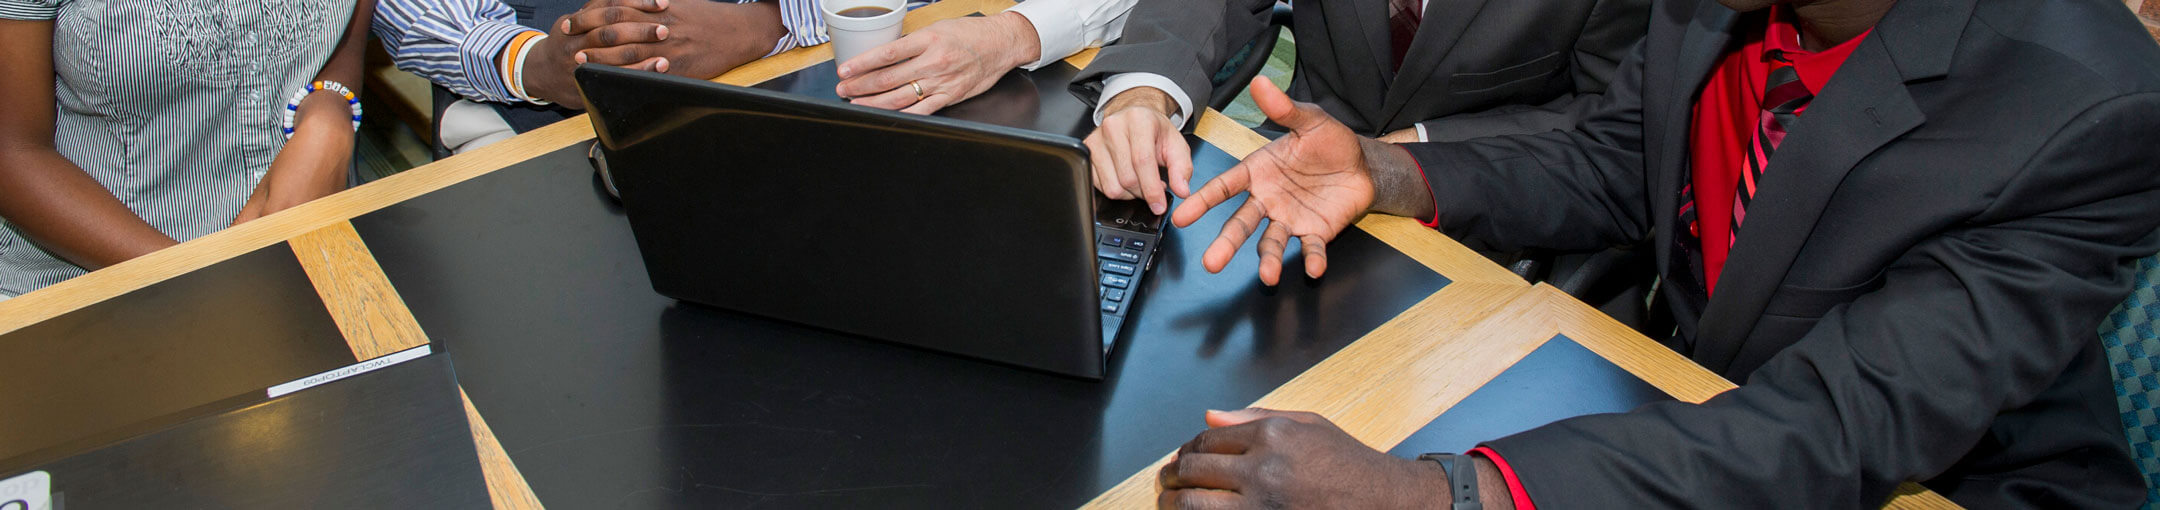 five people around a laptop discussing something in a meeting